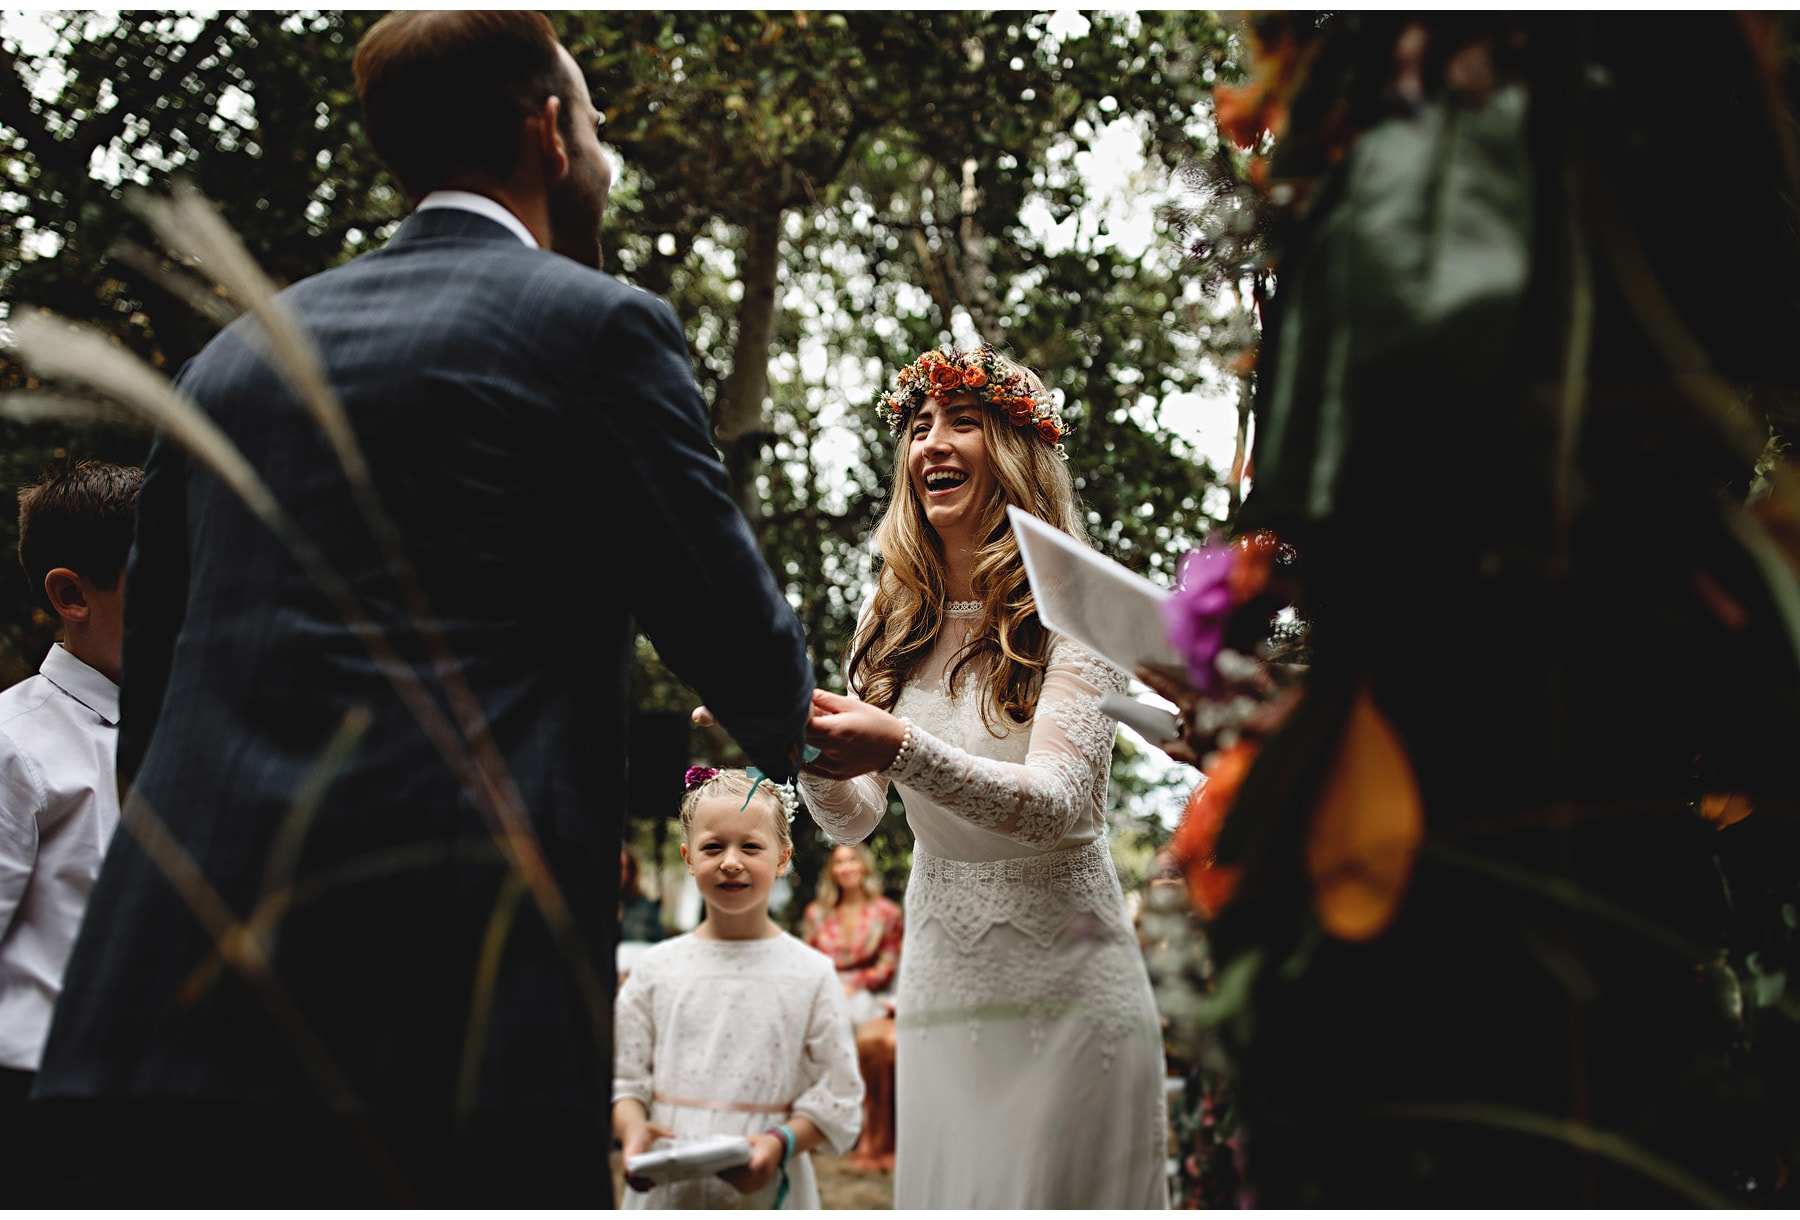 Guernsey Wedding Photography. Beautiful photos at a tipi wedding in the Channel Islands